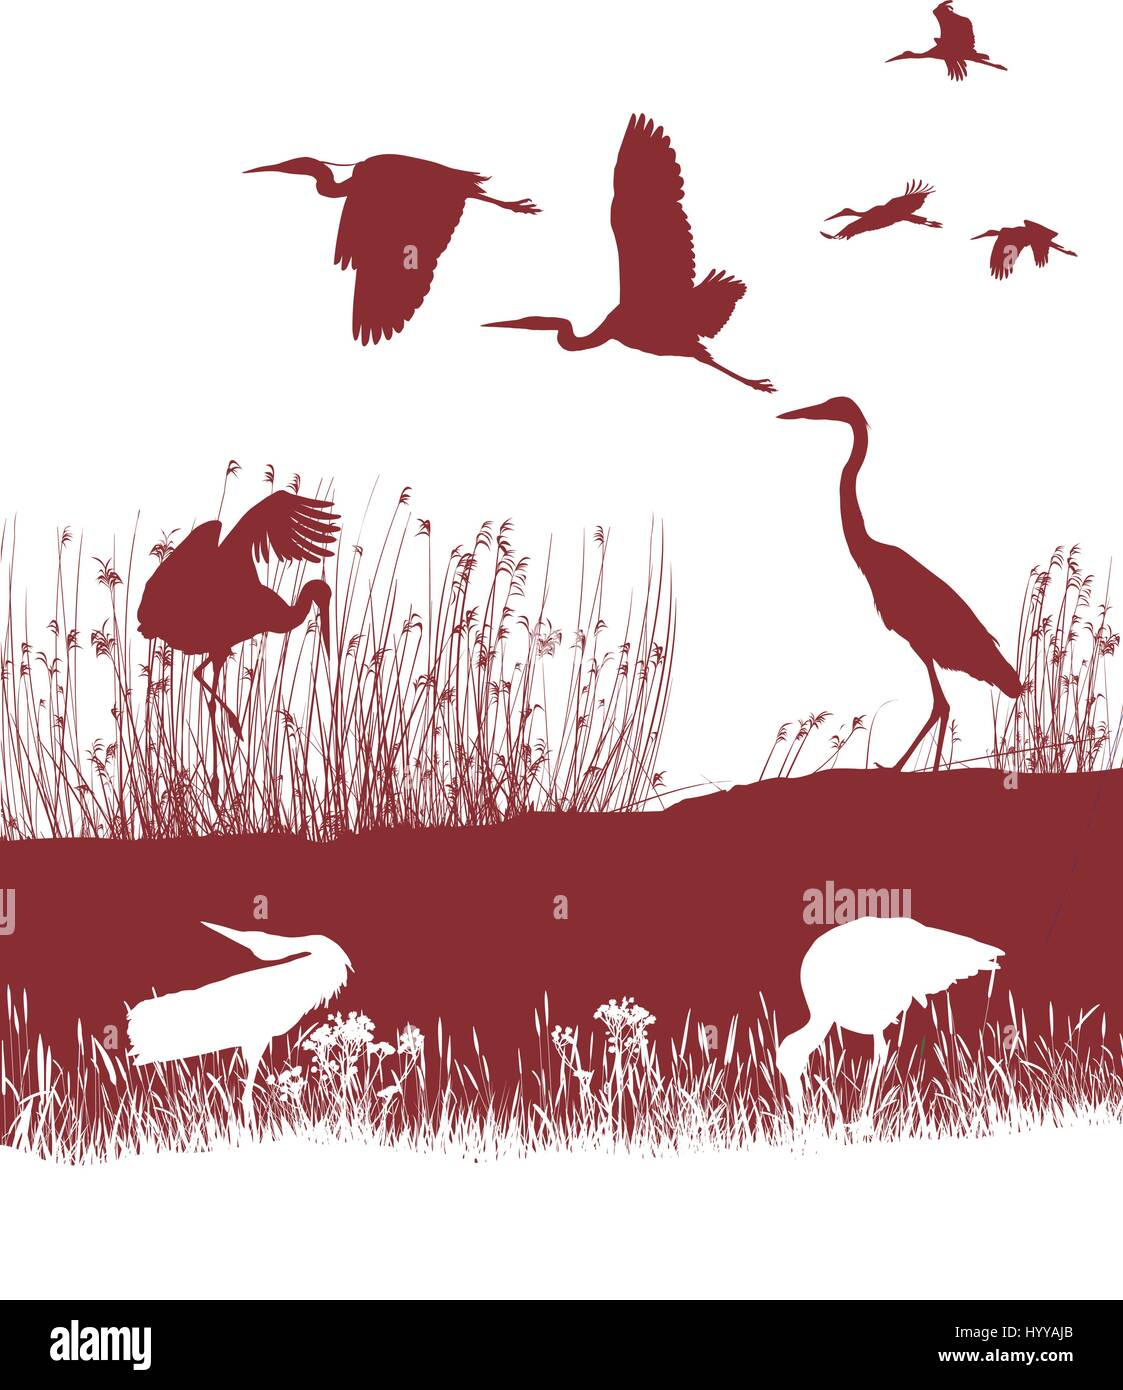 Storks and Herons on the shore - Stock Vector